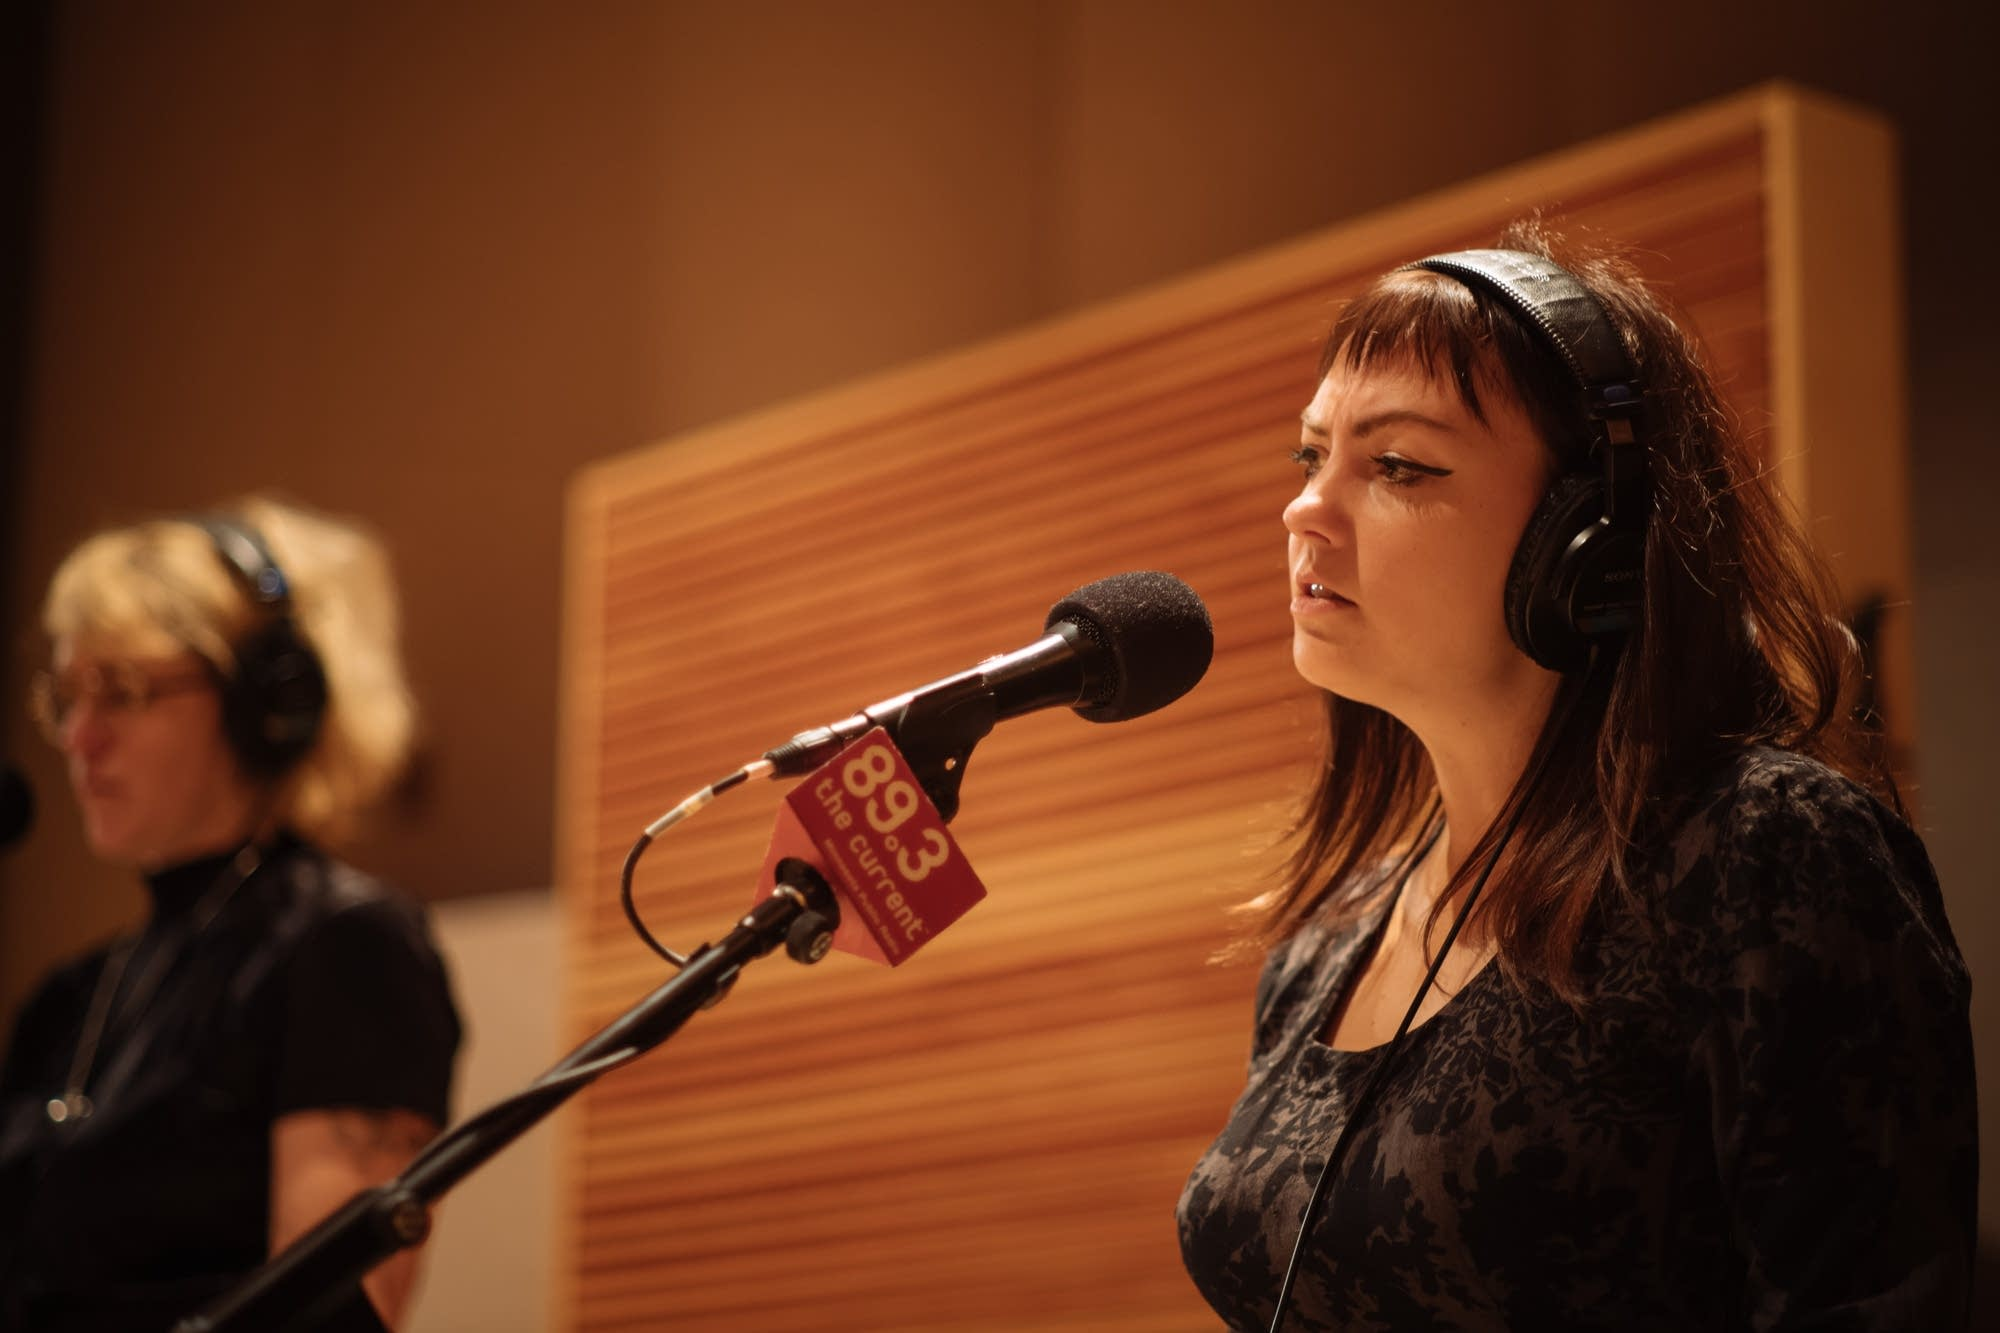 Angel Olsen performs in The Current studio